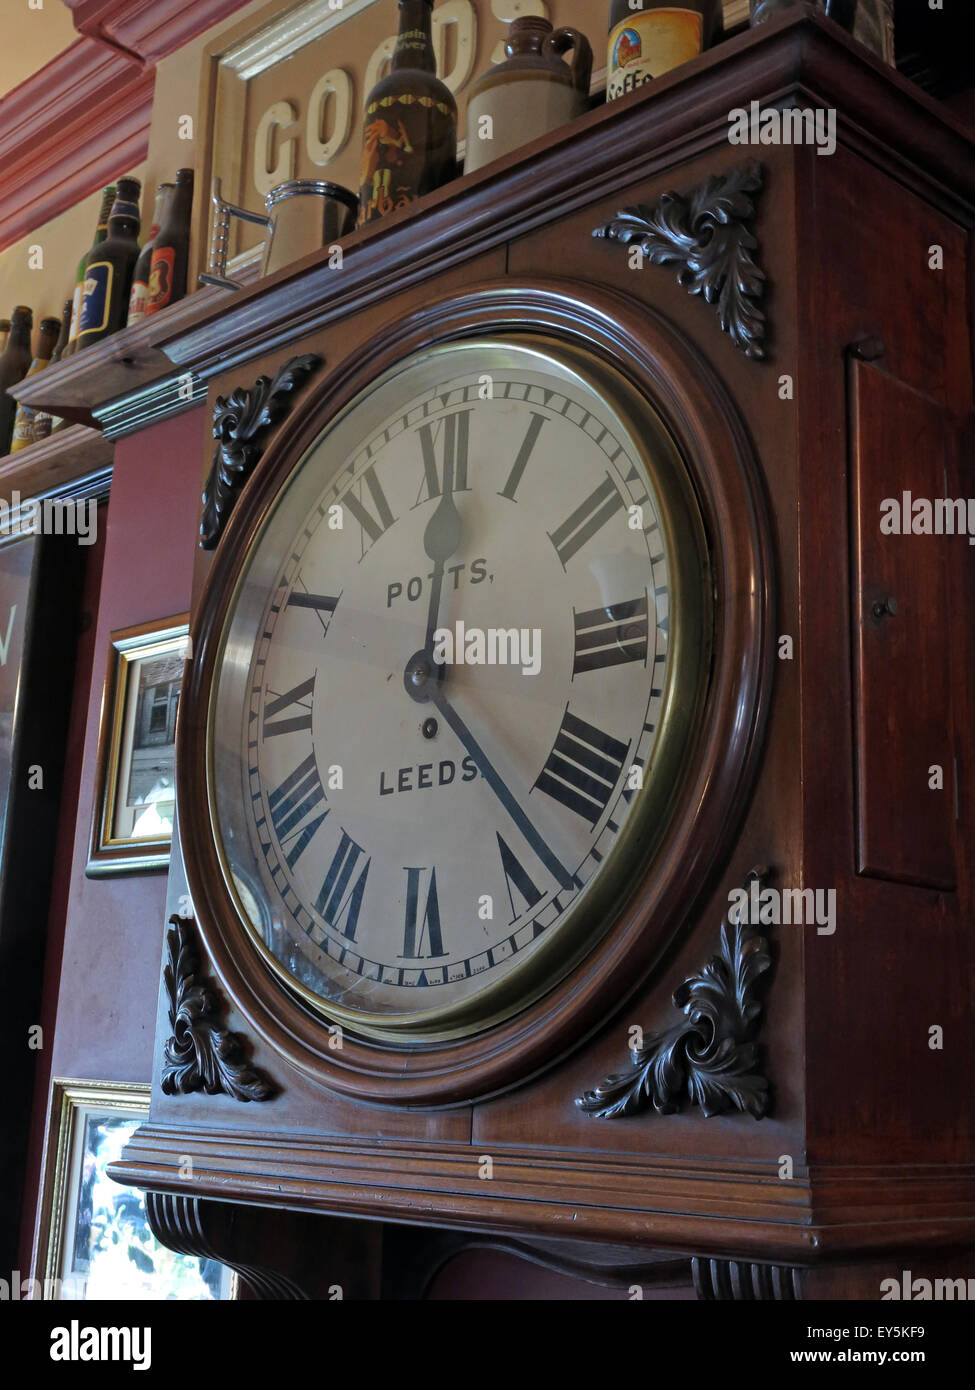 Real,Ale,realale,CAMRA,aletrail,WestRiding,bar,pubs,bars,drinking,drinkers,trans,pennine,transpennine,train,trains,trail,train,ales,platform,buffet,cafe,sign,Stalybridge,public,inside,interior,Potts,Timepiece,clock,wallclock,Ale Train,Ale trail,Wall Clock,GoTonySmith,Buy Pictures of,Buy Images Of